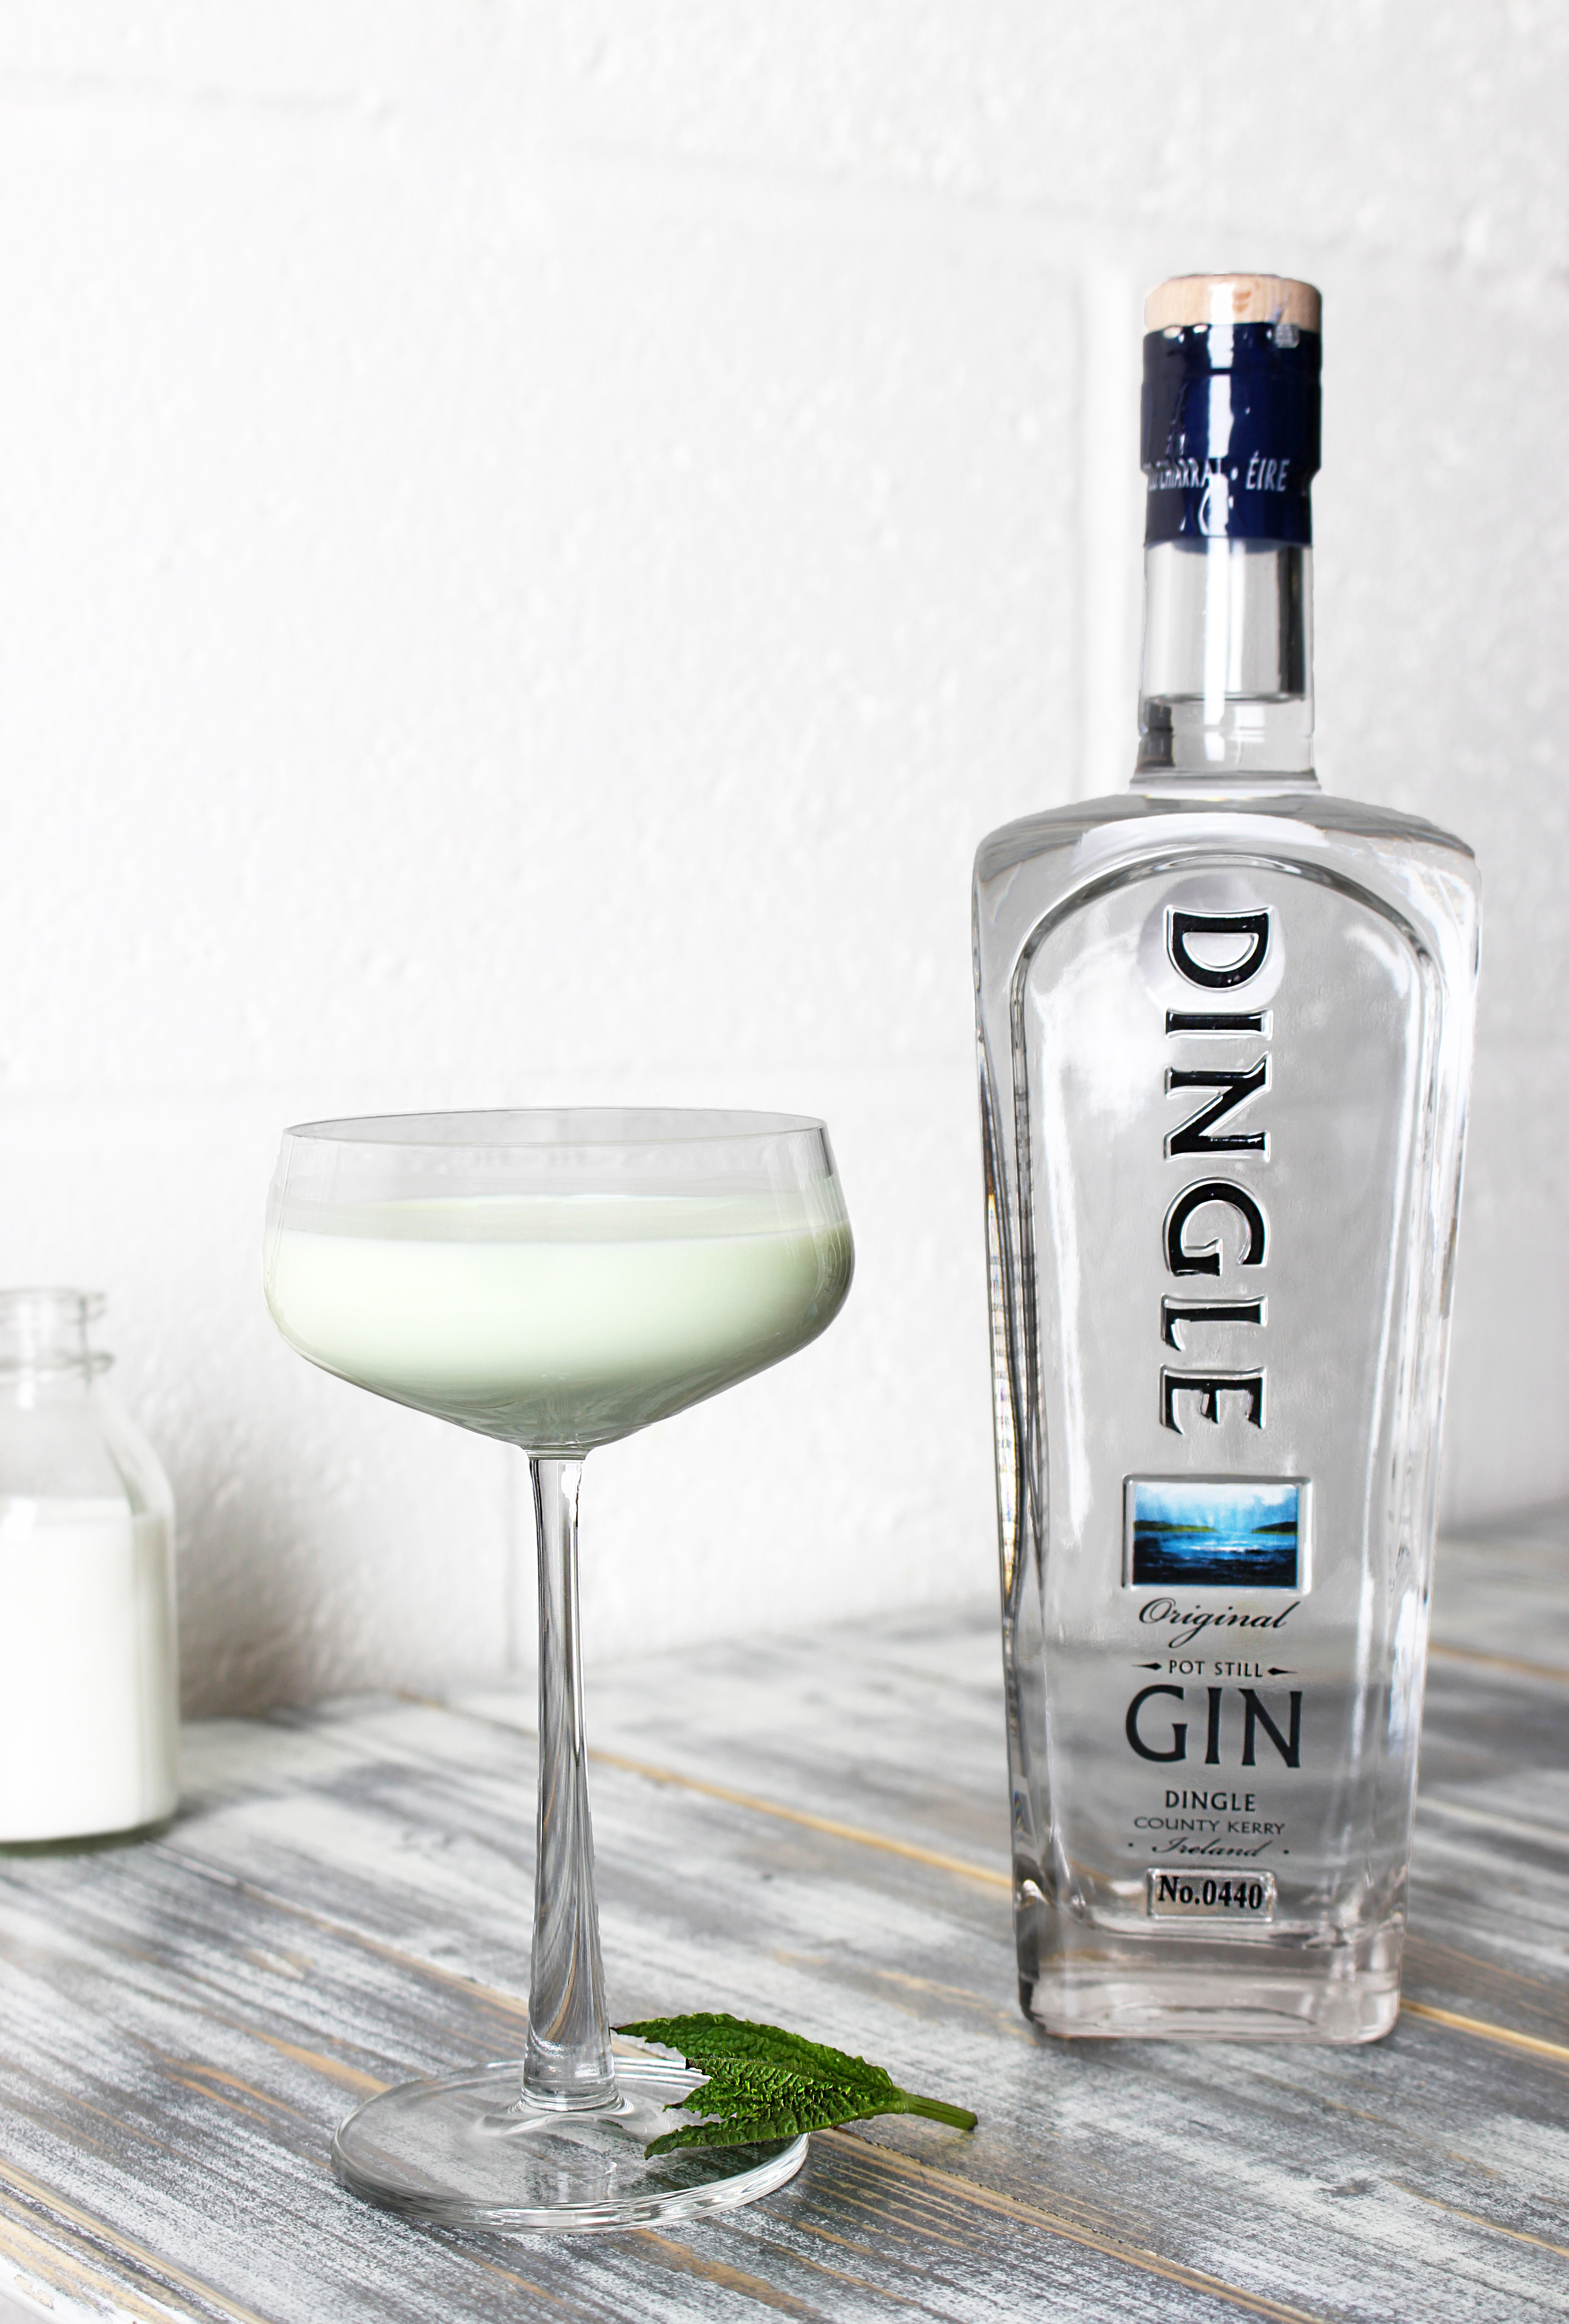 Dingle Mint Choc Chip Dingle Original Gin